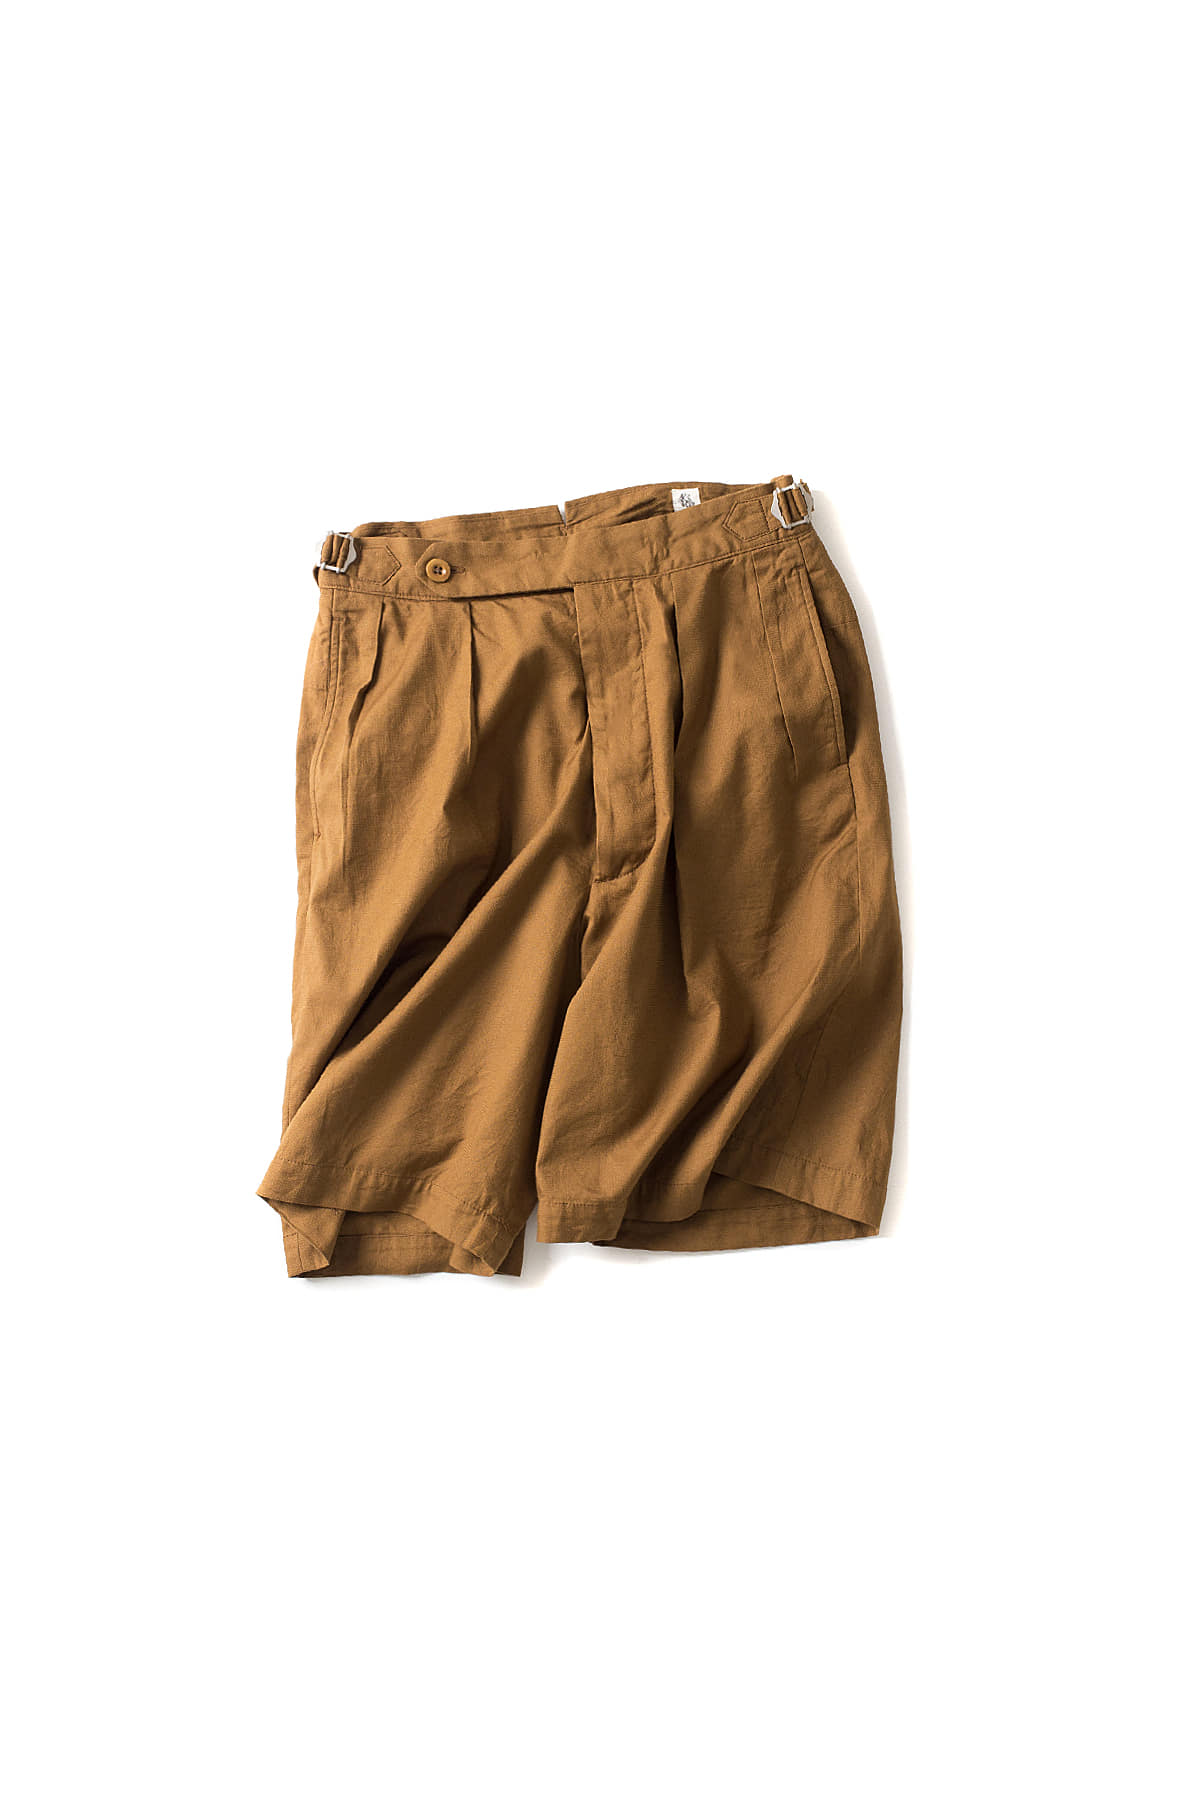 Kaptain Sunshine : Riviera Short Pants (Brown)